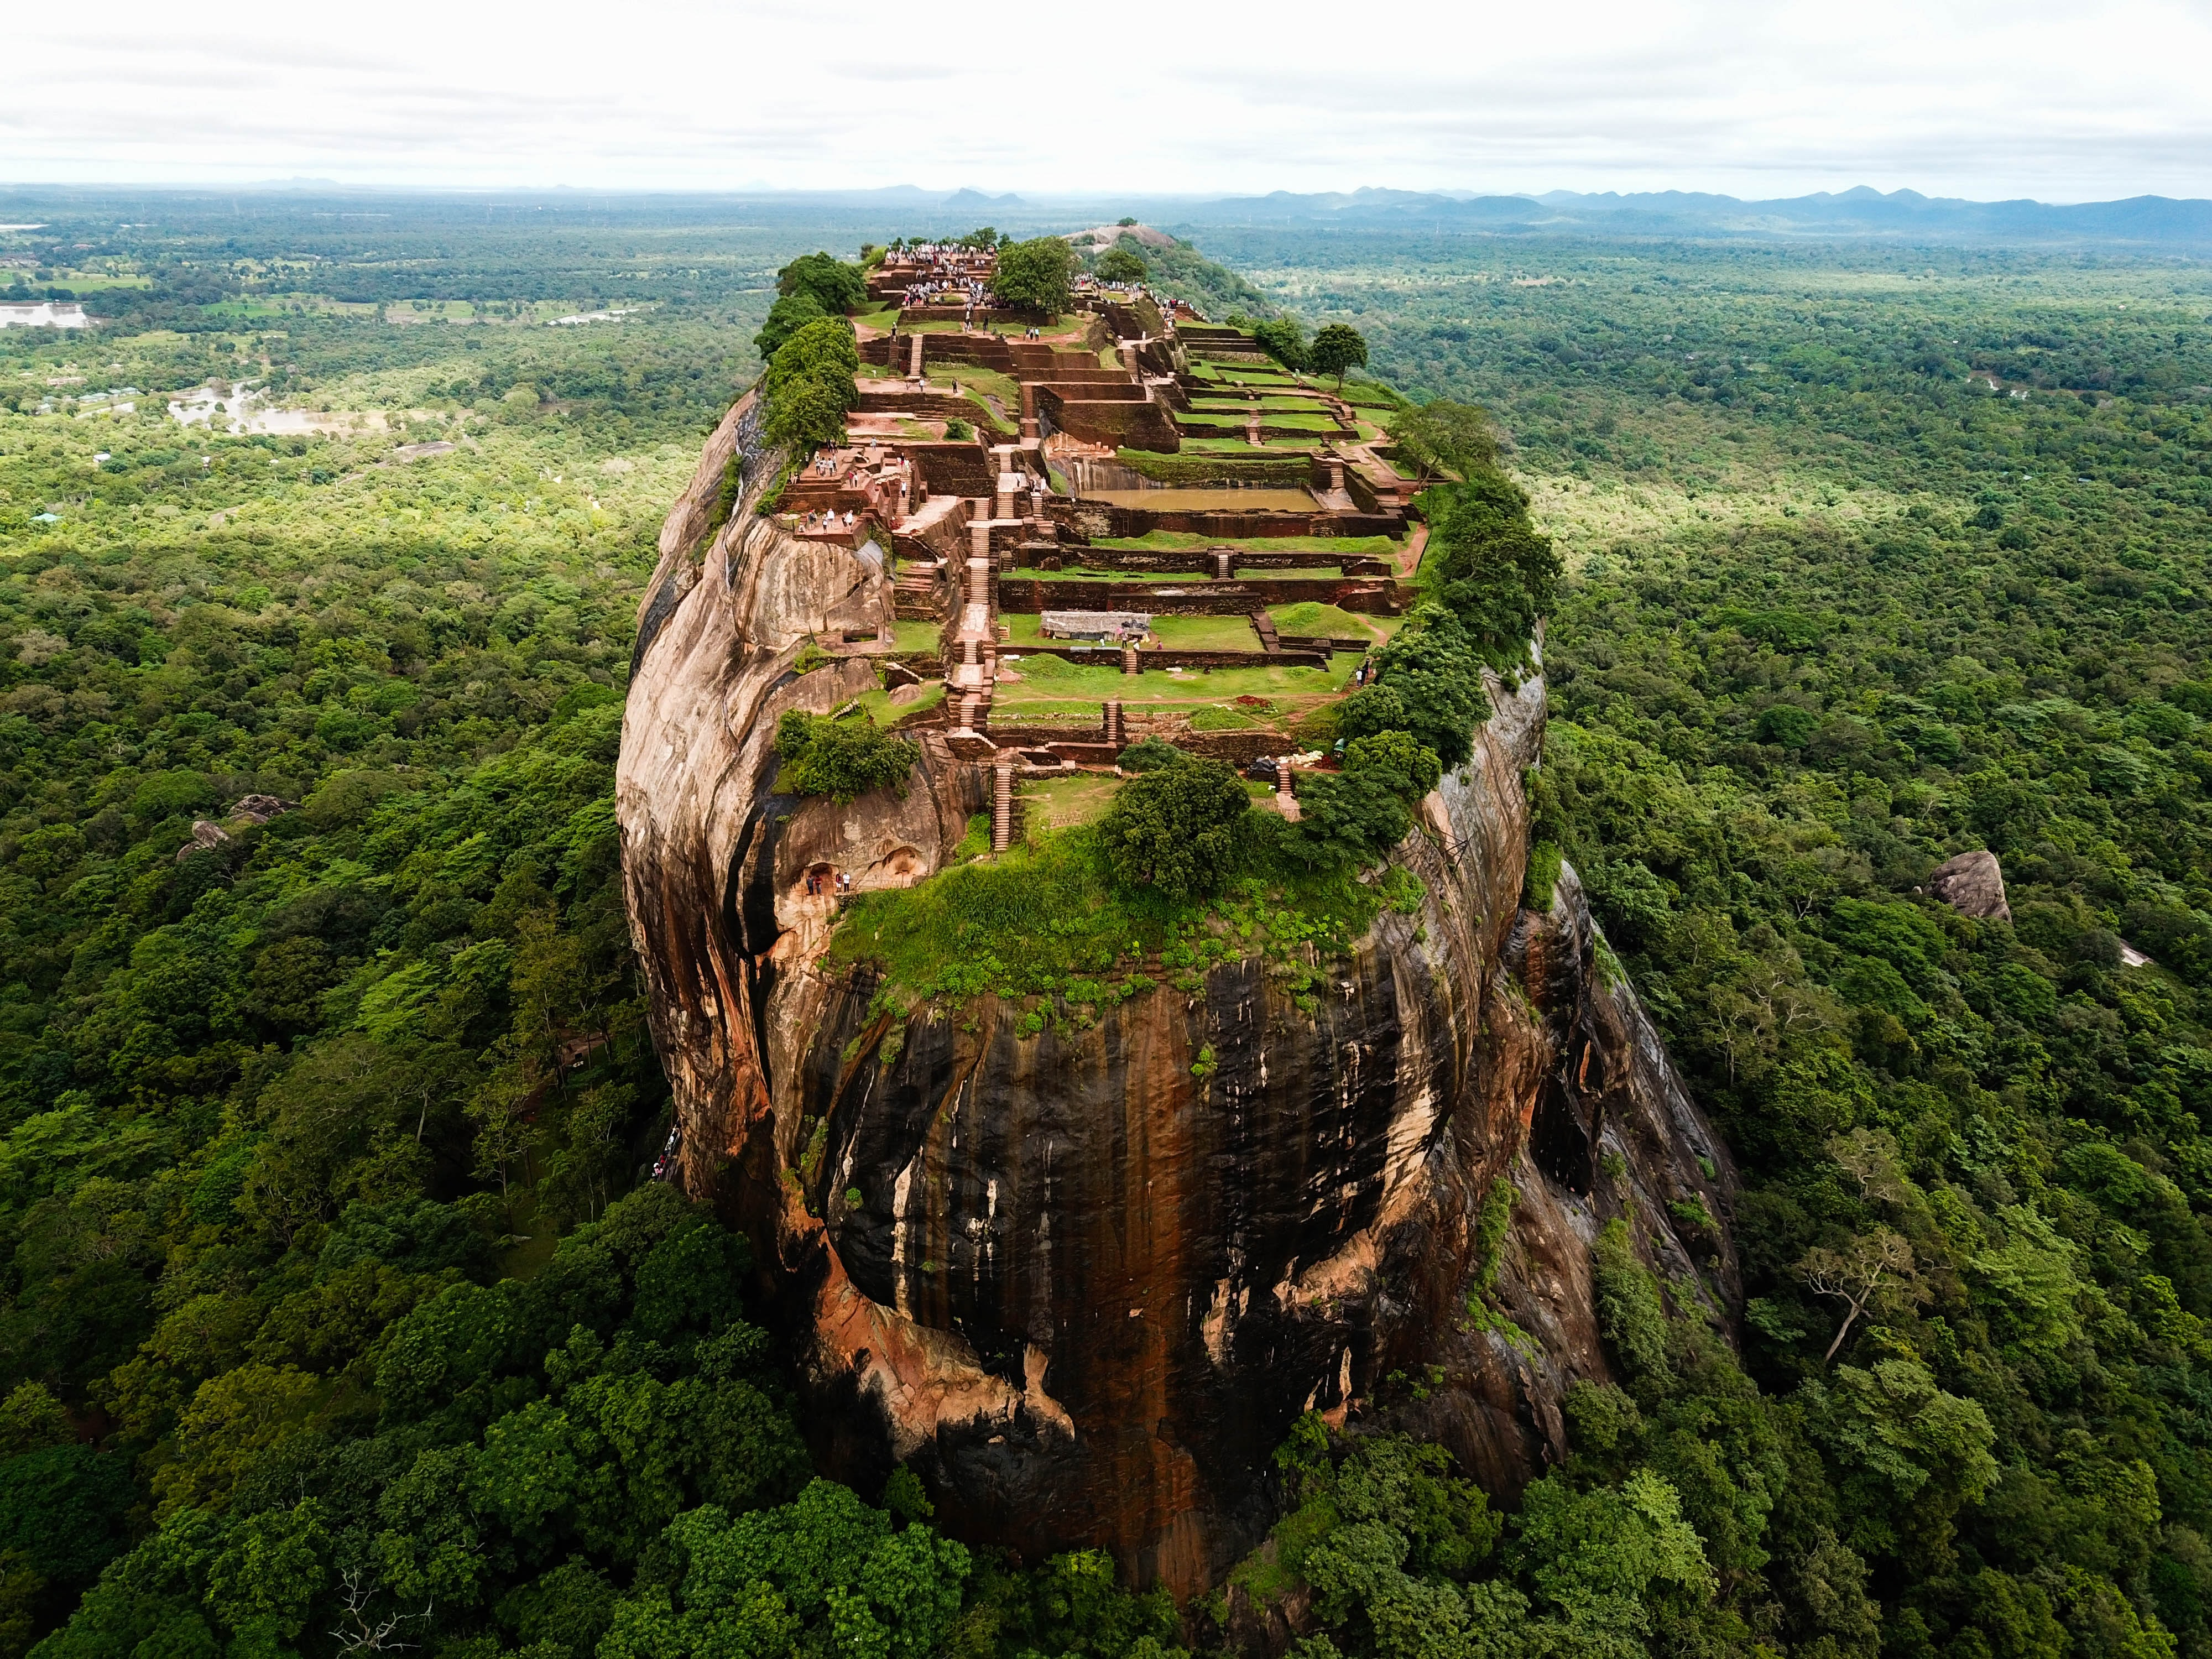 Sigiriya Rock Fortress, one of the best places to visit in Sri Lanka